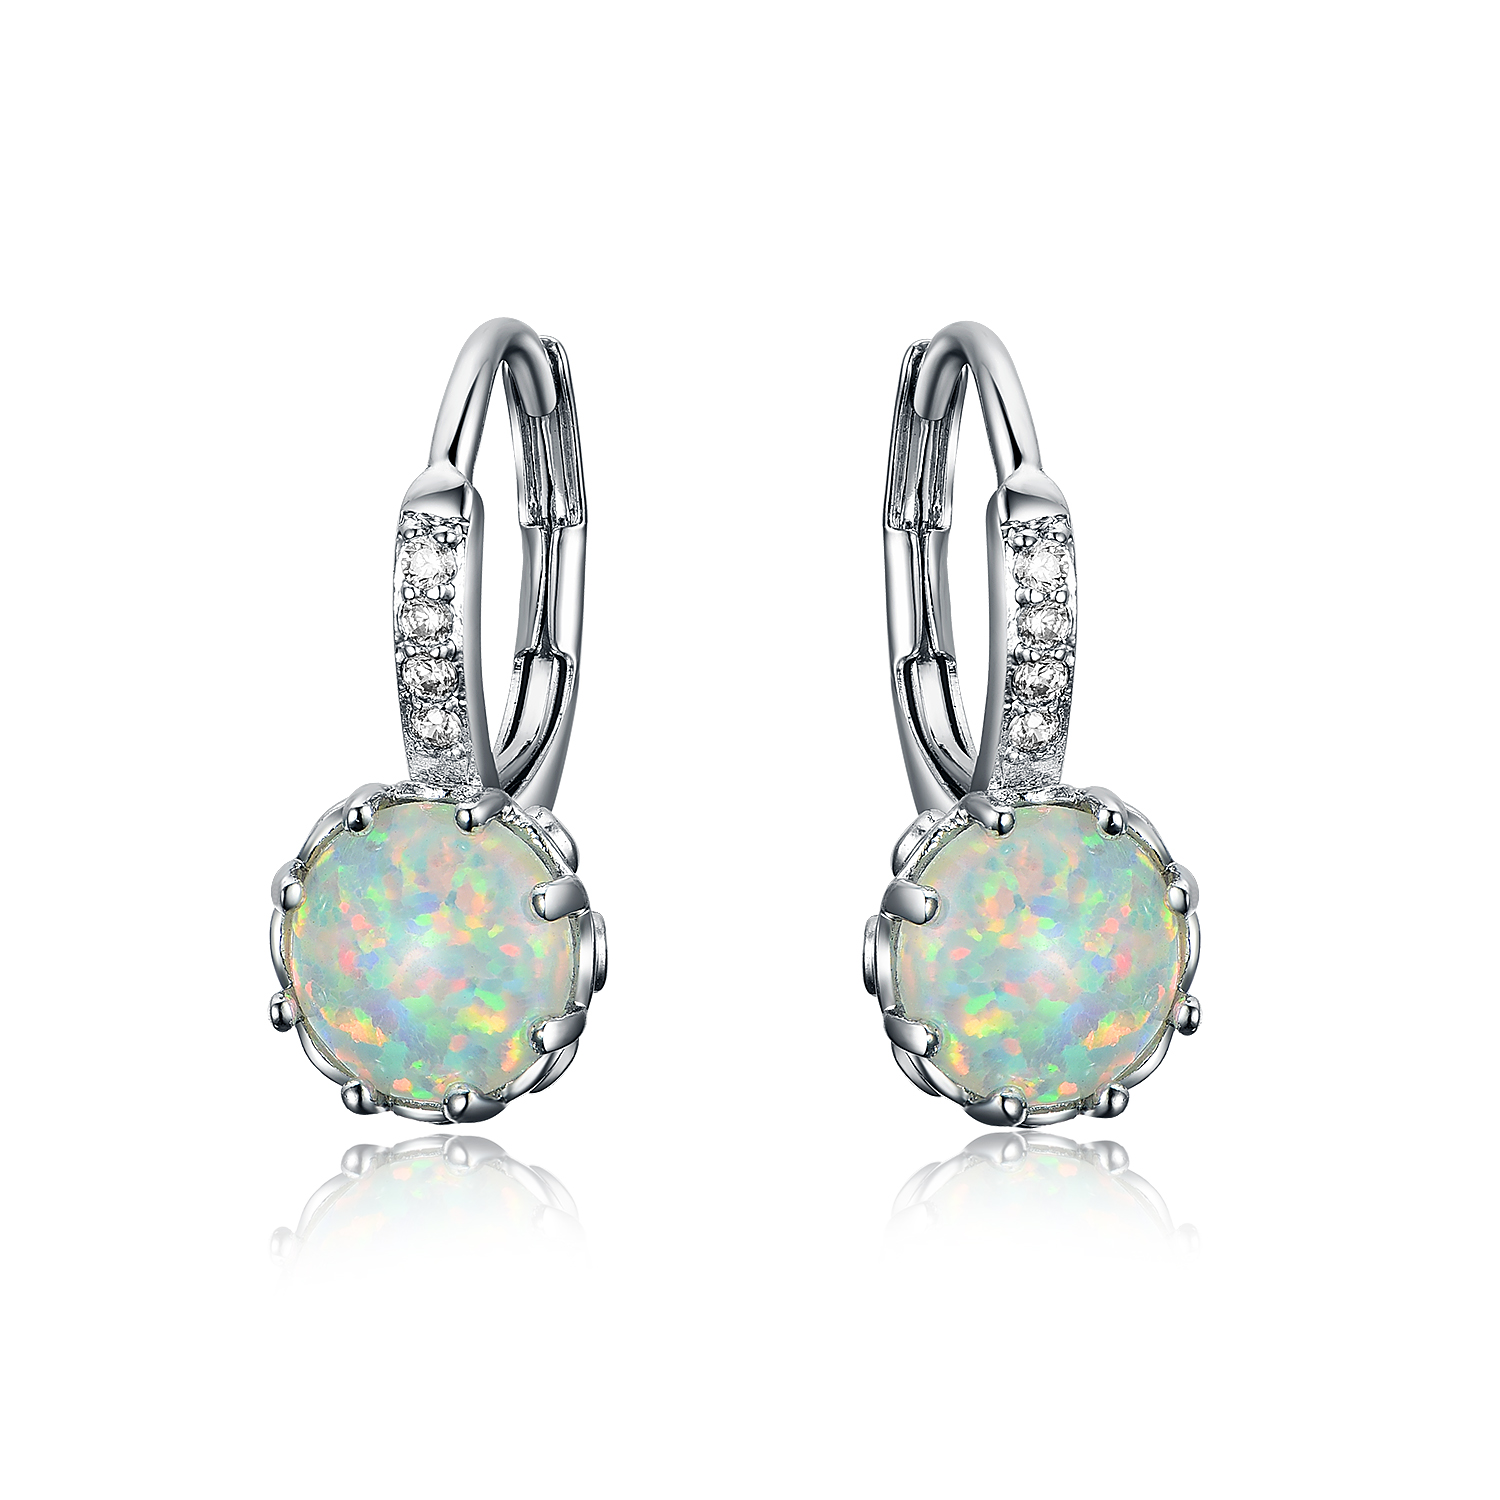 ST2395-Round 7mm White Opal Leverback Earring & Necklace in Sterling Silver with Rhodium plating from China Top Jewelry factory